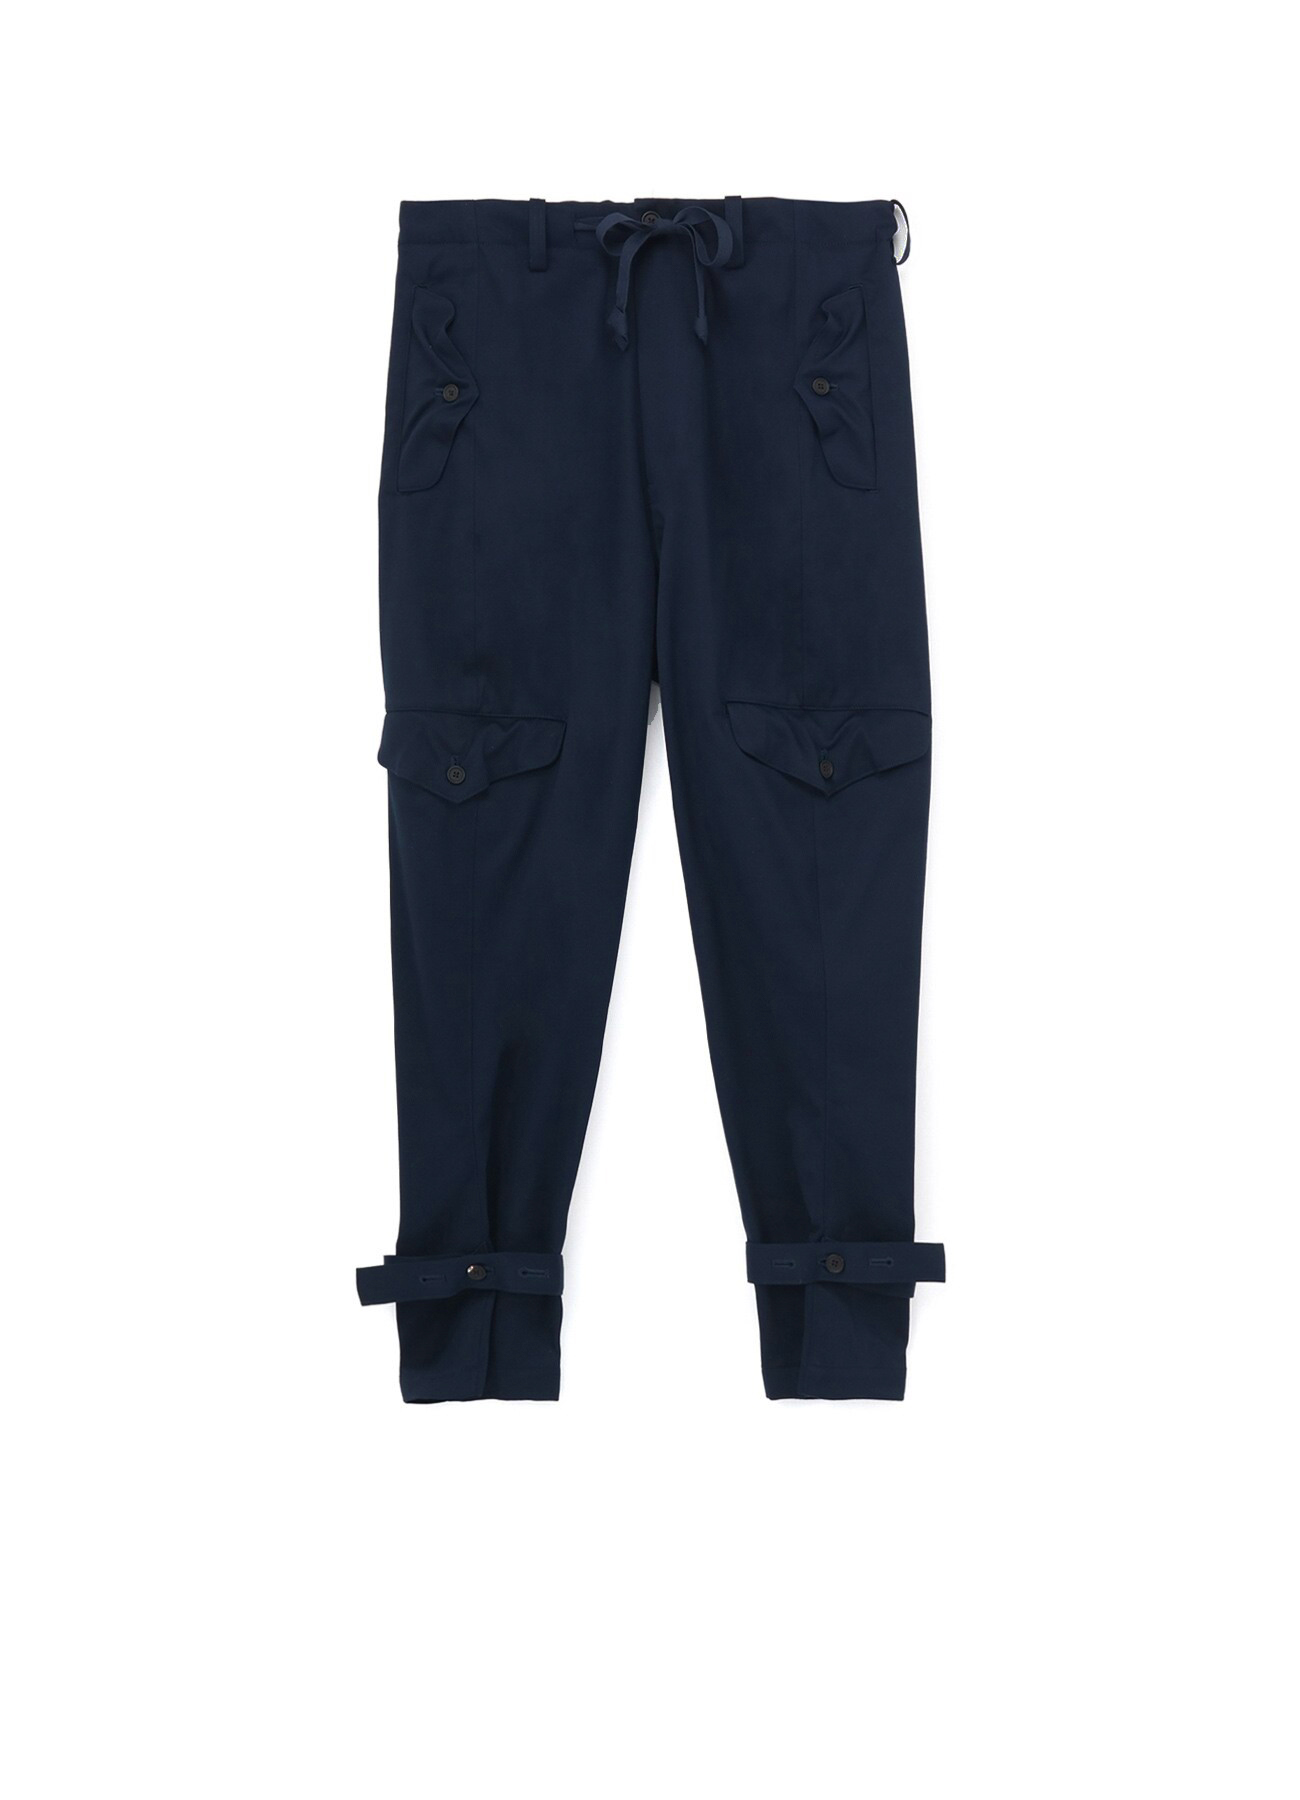 C/ Brushed Eased Seam M-59 Cargo Pants